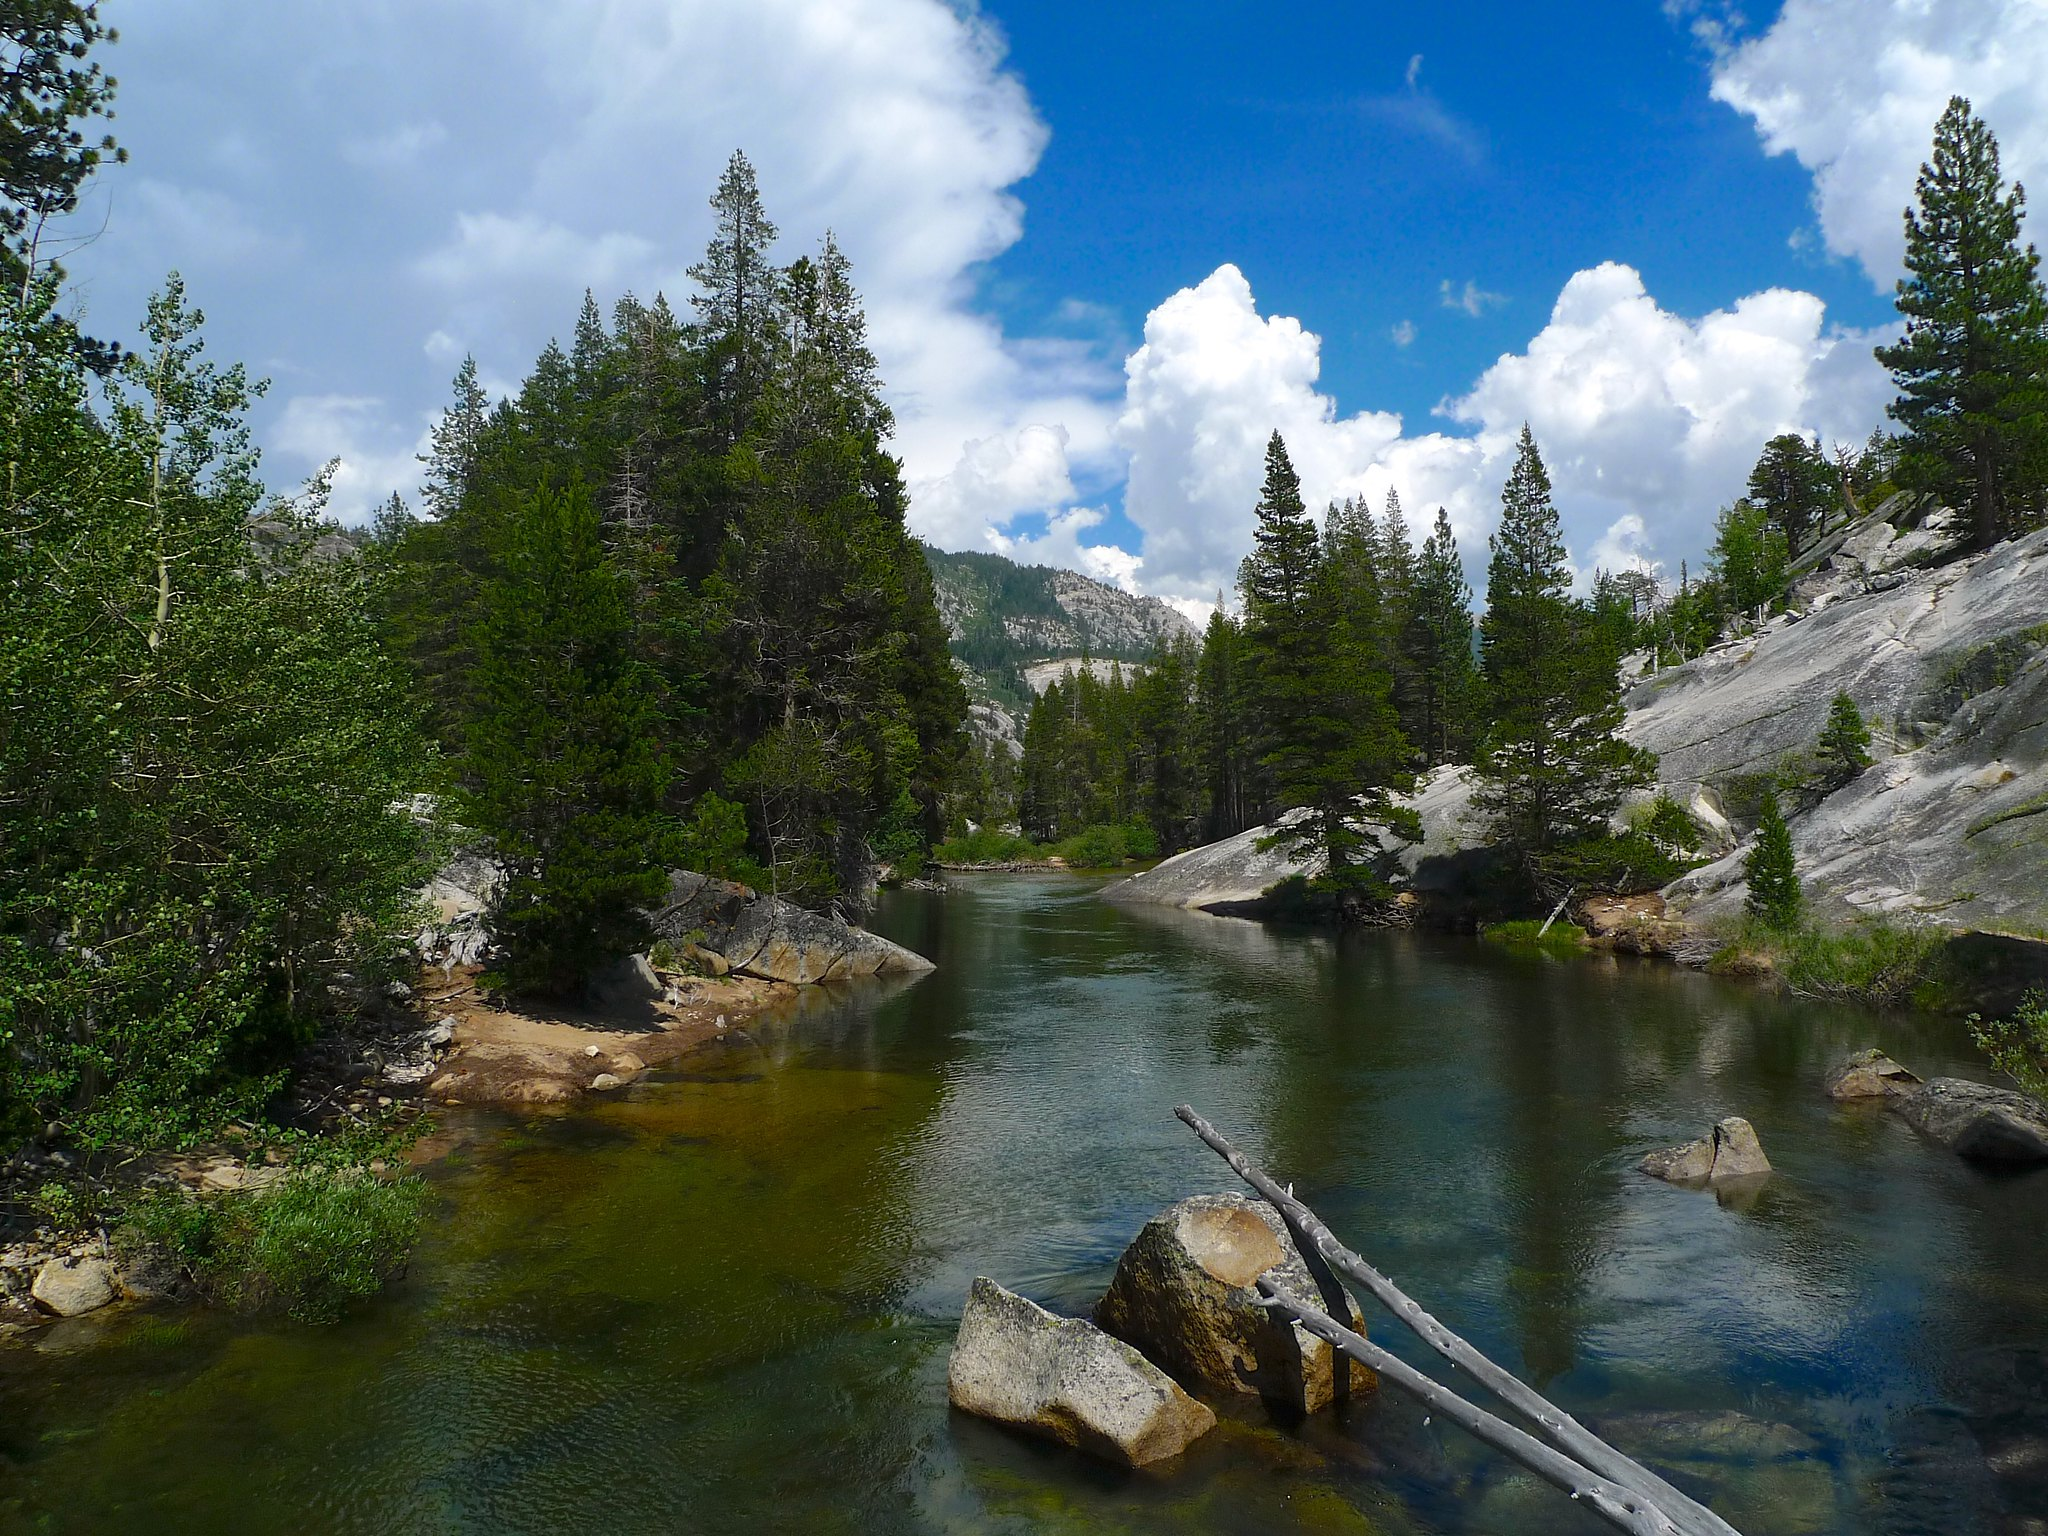 Following the Merced River down towards Little Yosemite Valley